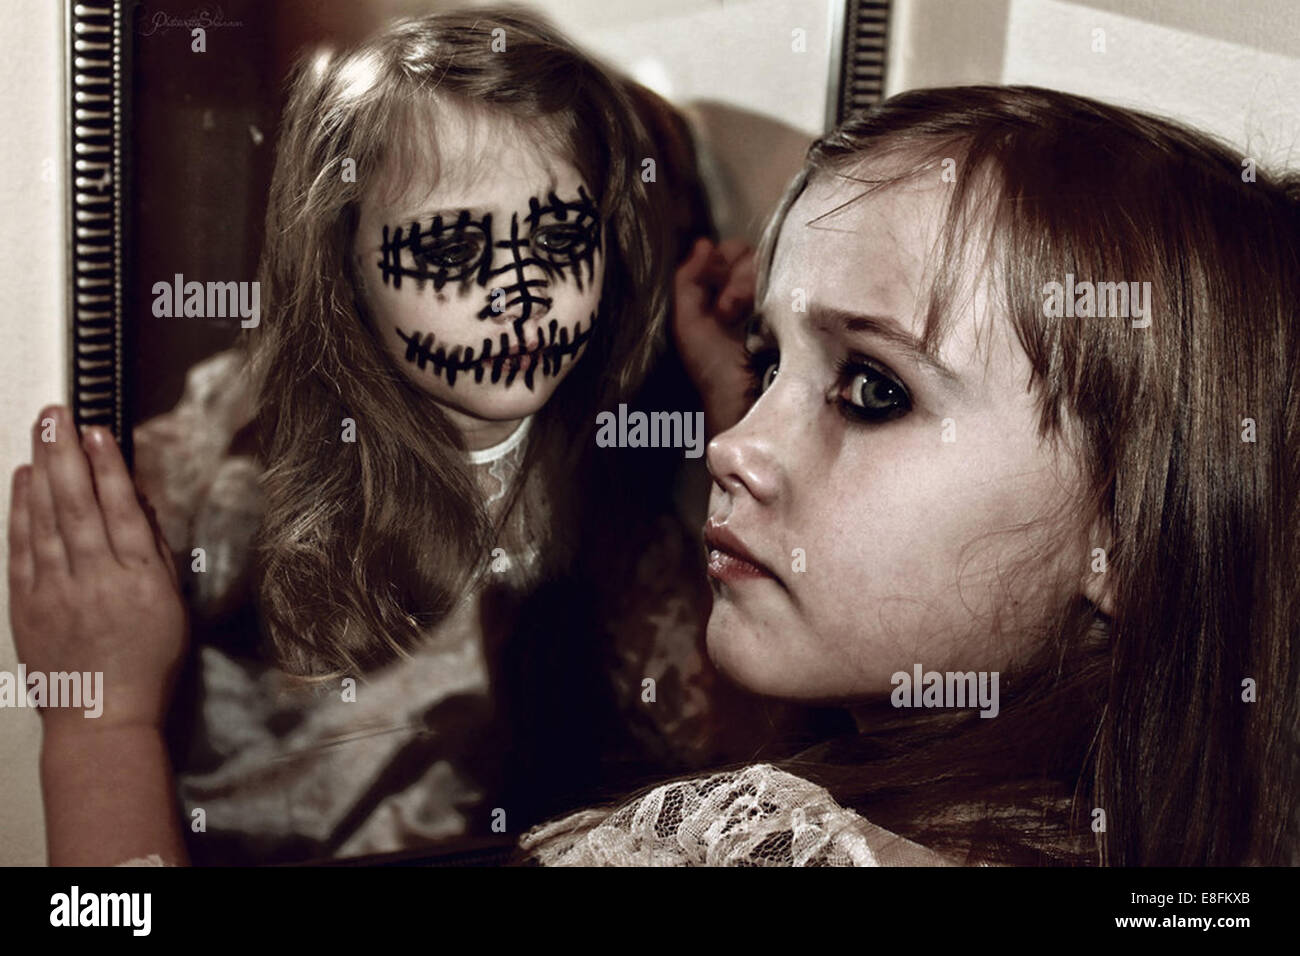 Girl and her alter ego in mirror - Stock Image